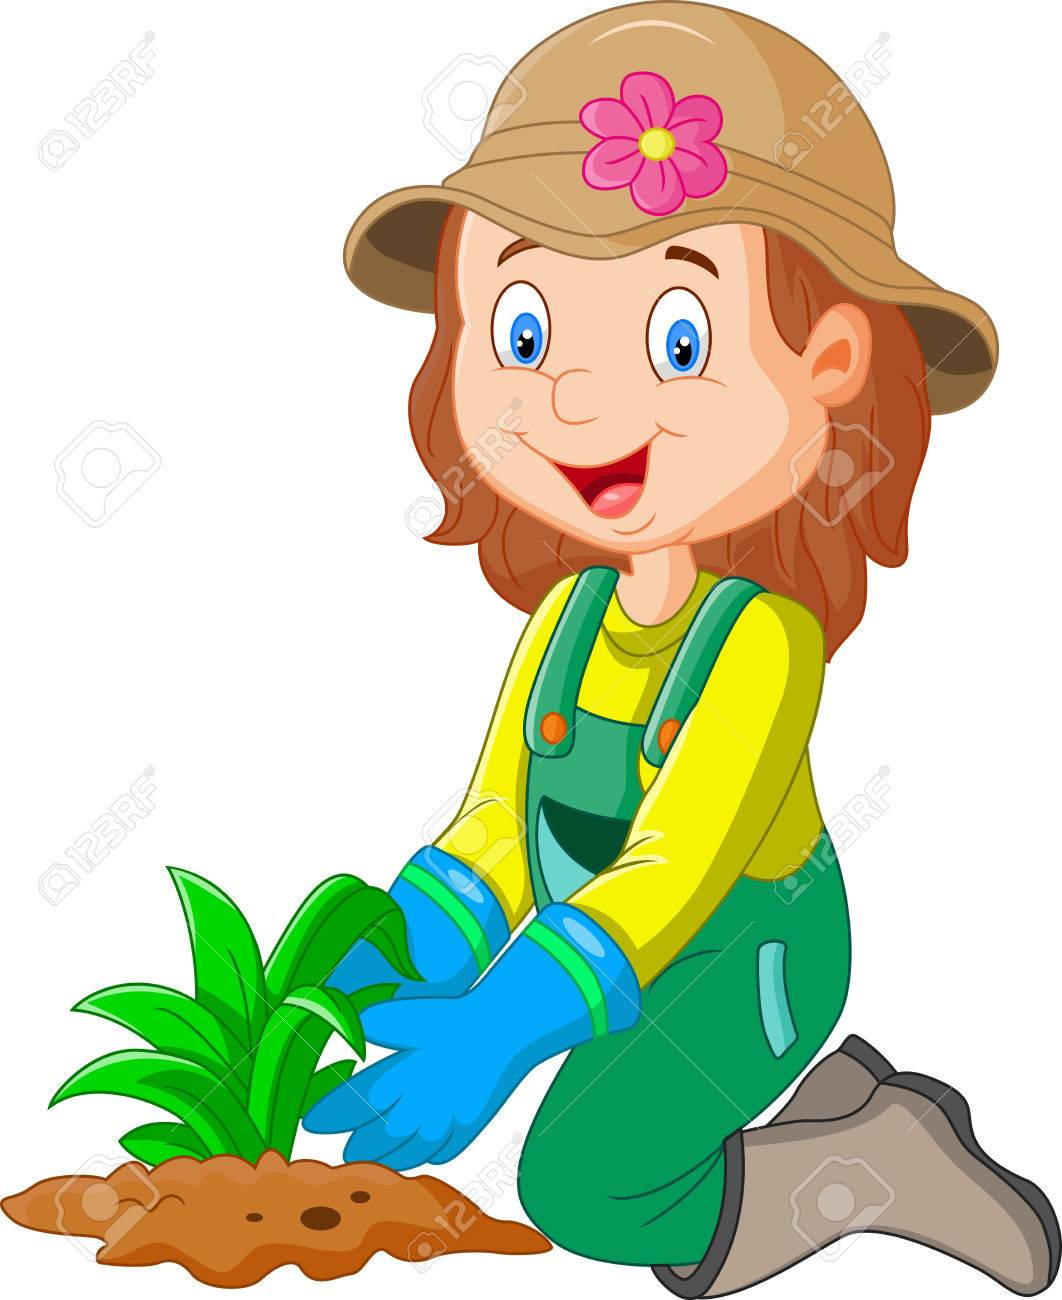 Cartoon Illustration She Was Plants In The Garden Royalty Free Cliparts Vectors And Stock Illustration Image 45091428